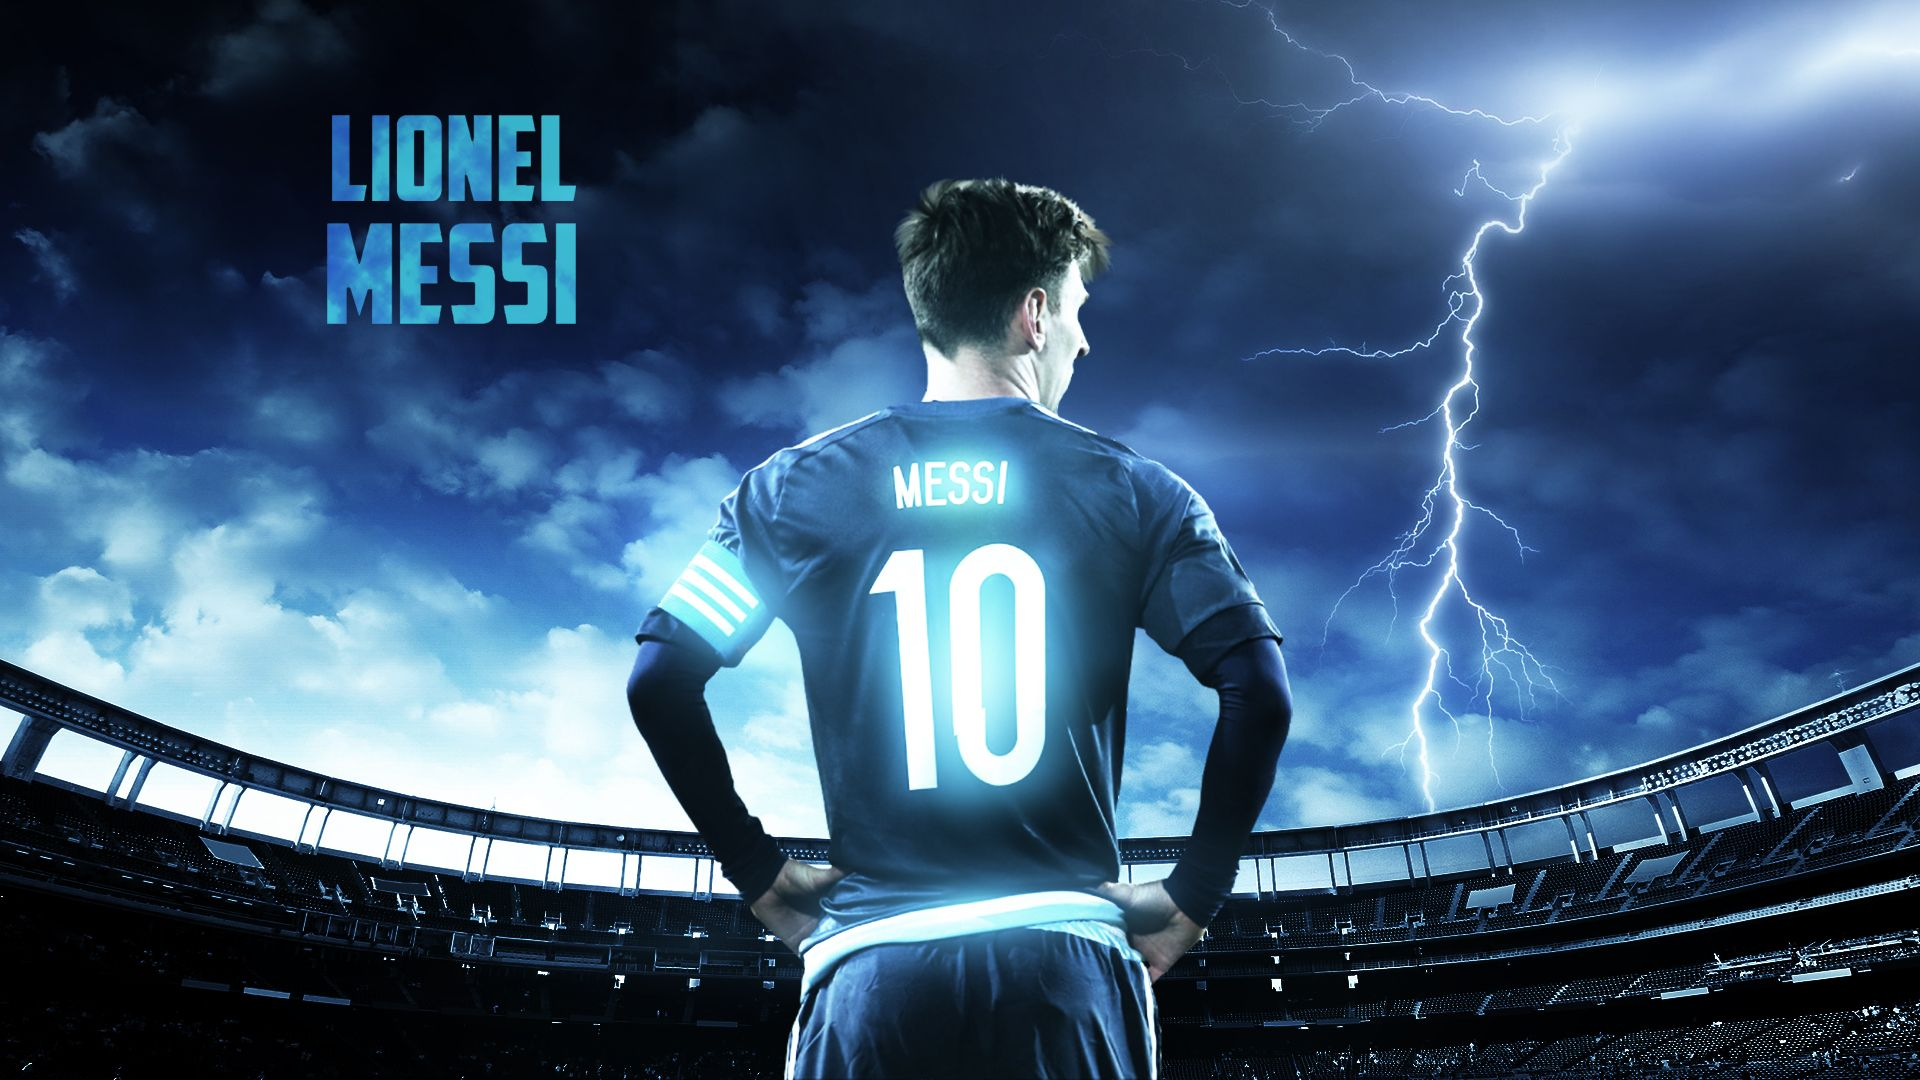 messi 3d wallpaper - 2018 wallpapers hd | wallpaper | pinterest